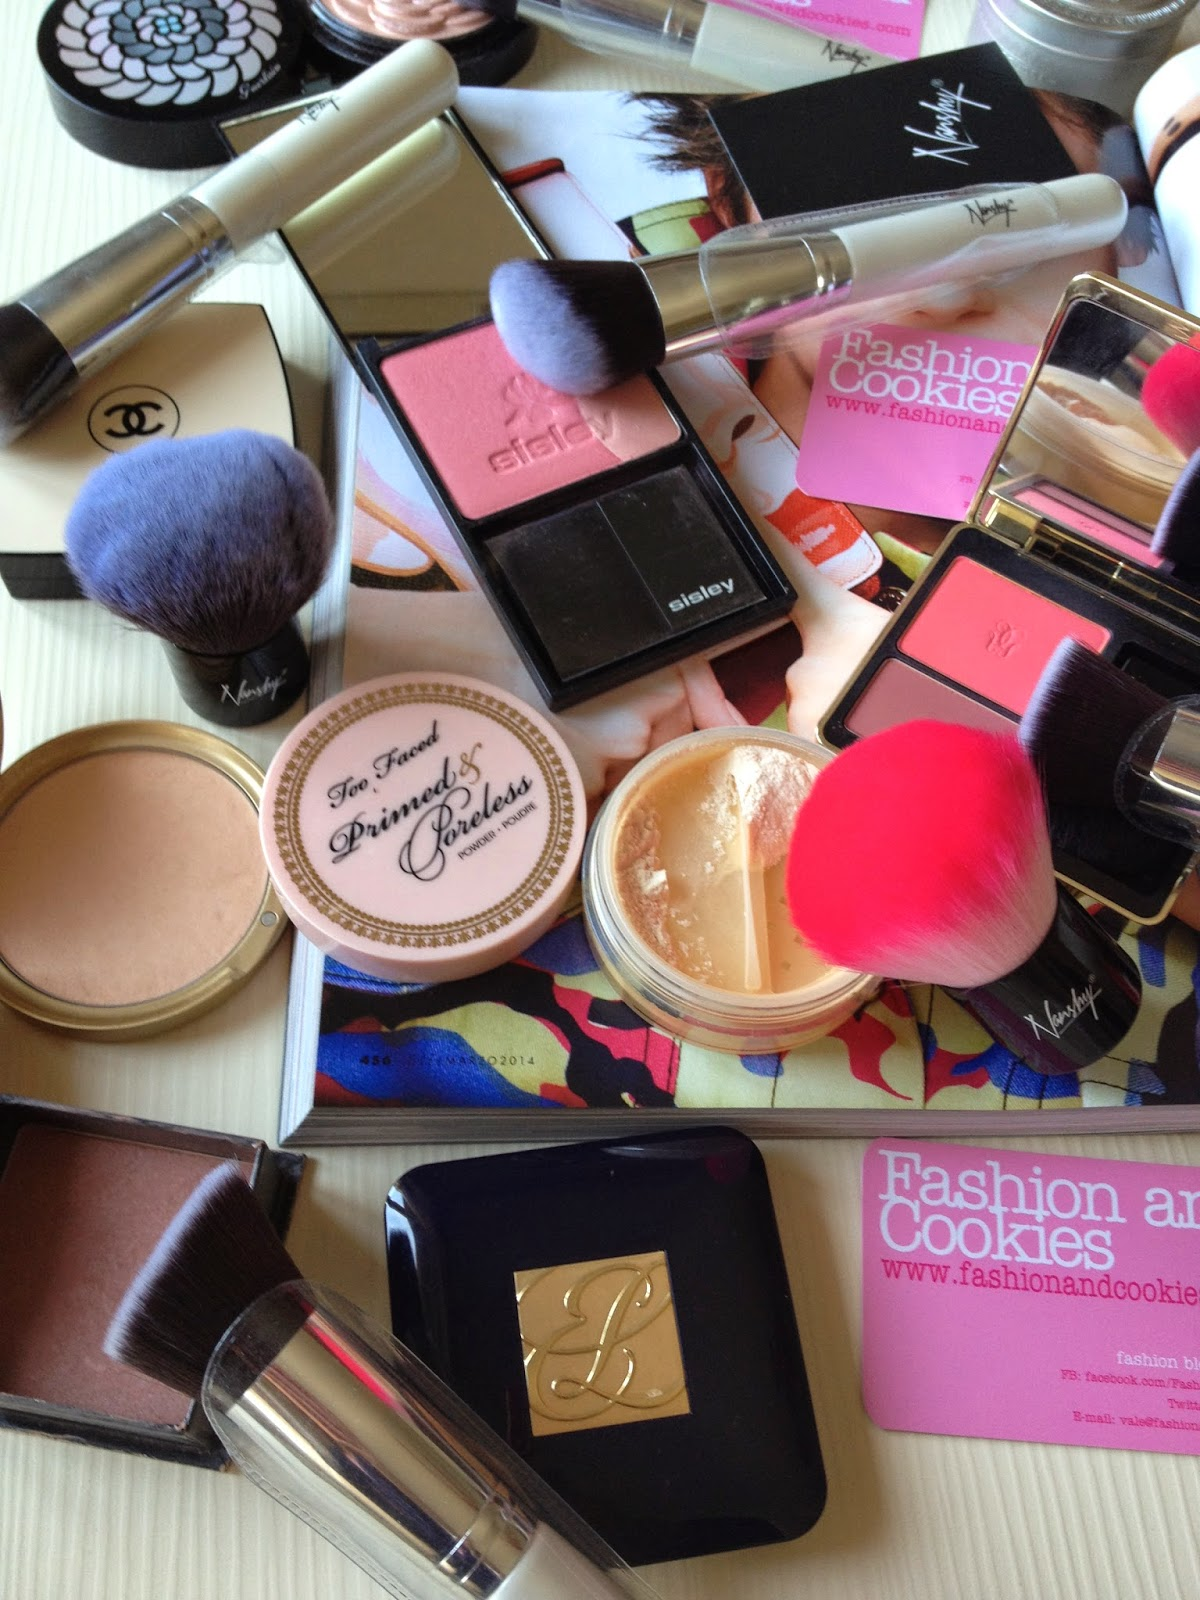 Nanshy foundation brushes review on Fashion and Cookies, fashion blogger